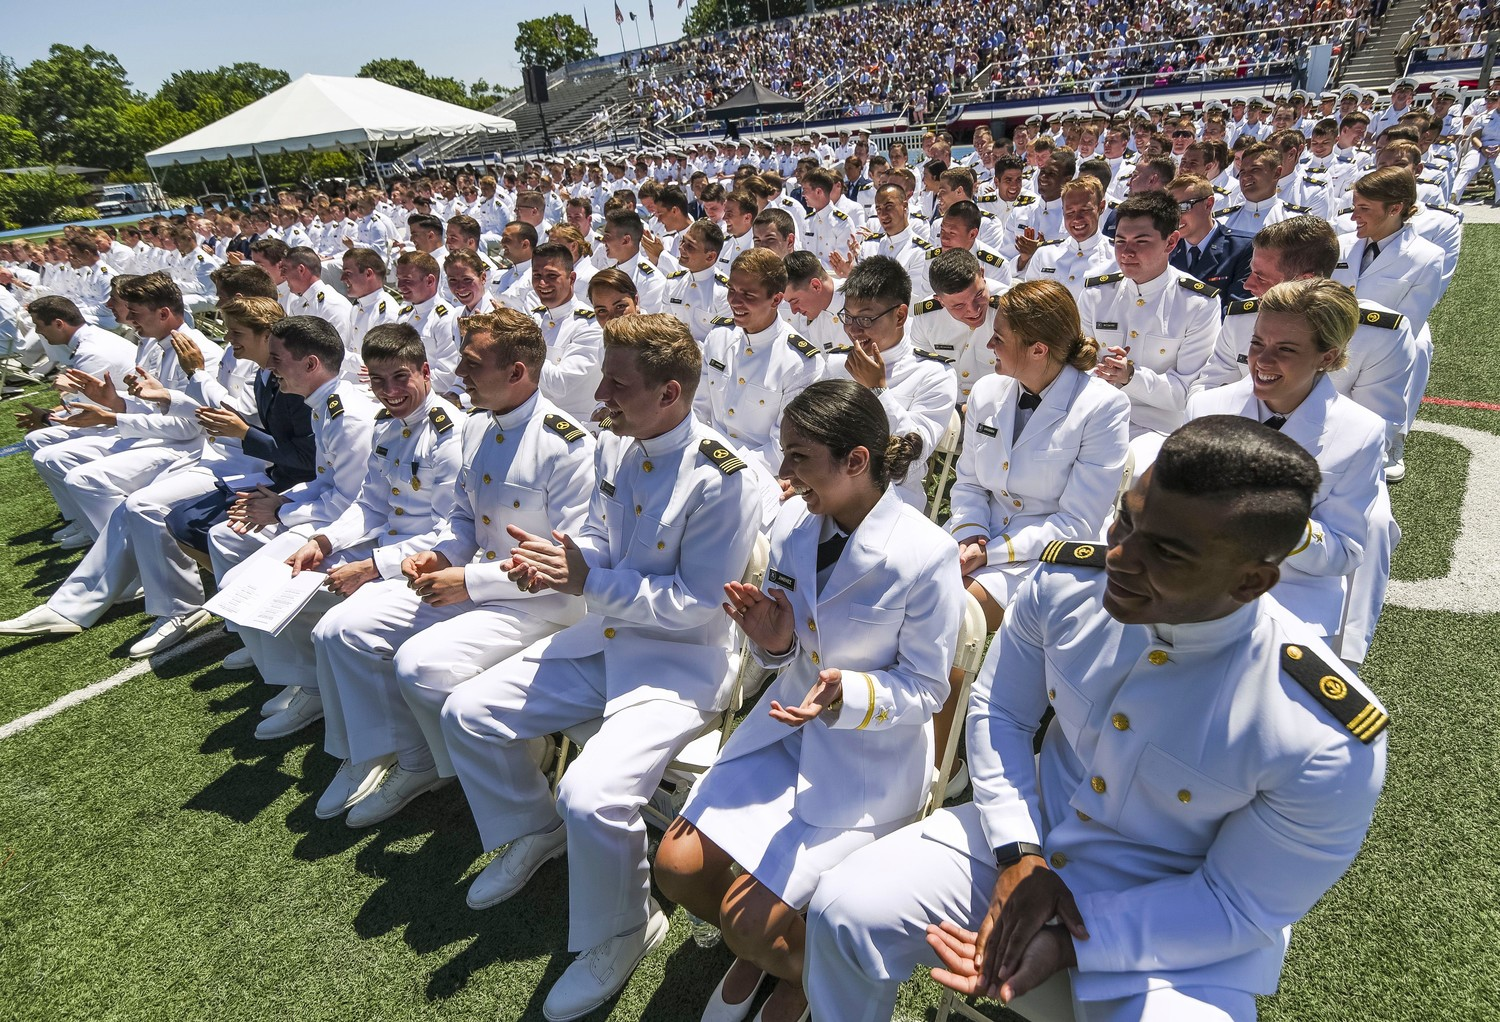 Andrew and Anthony Suarez of East Meadow were recently sworn in as Midshipmen in the US Naval Reserve at the United States Merchant Marine Academy at Kings Point.